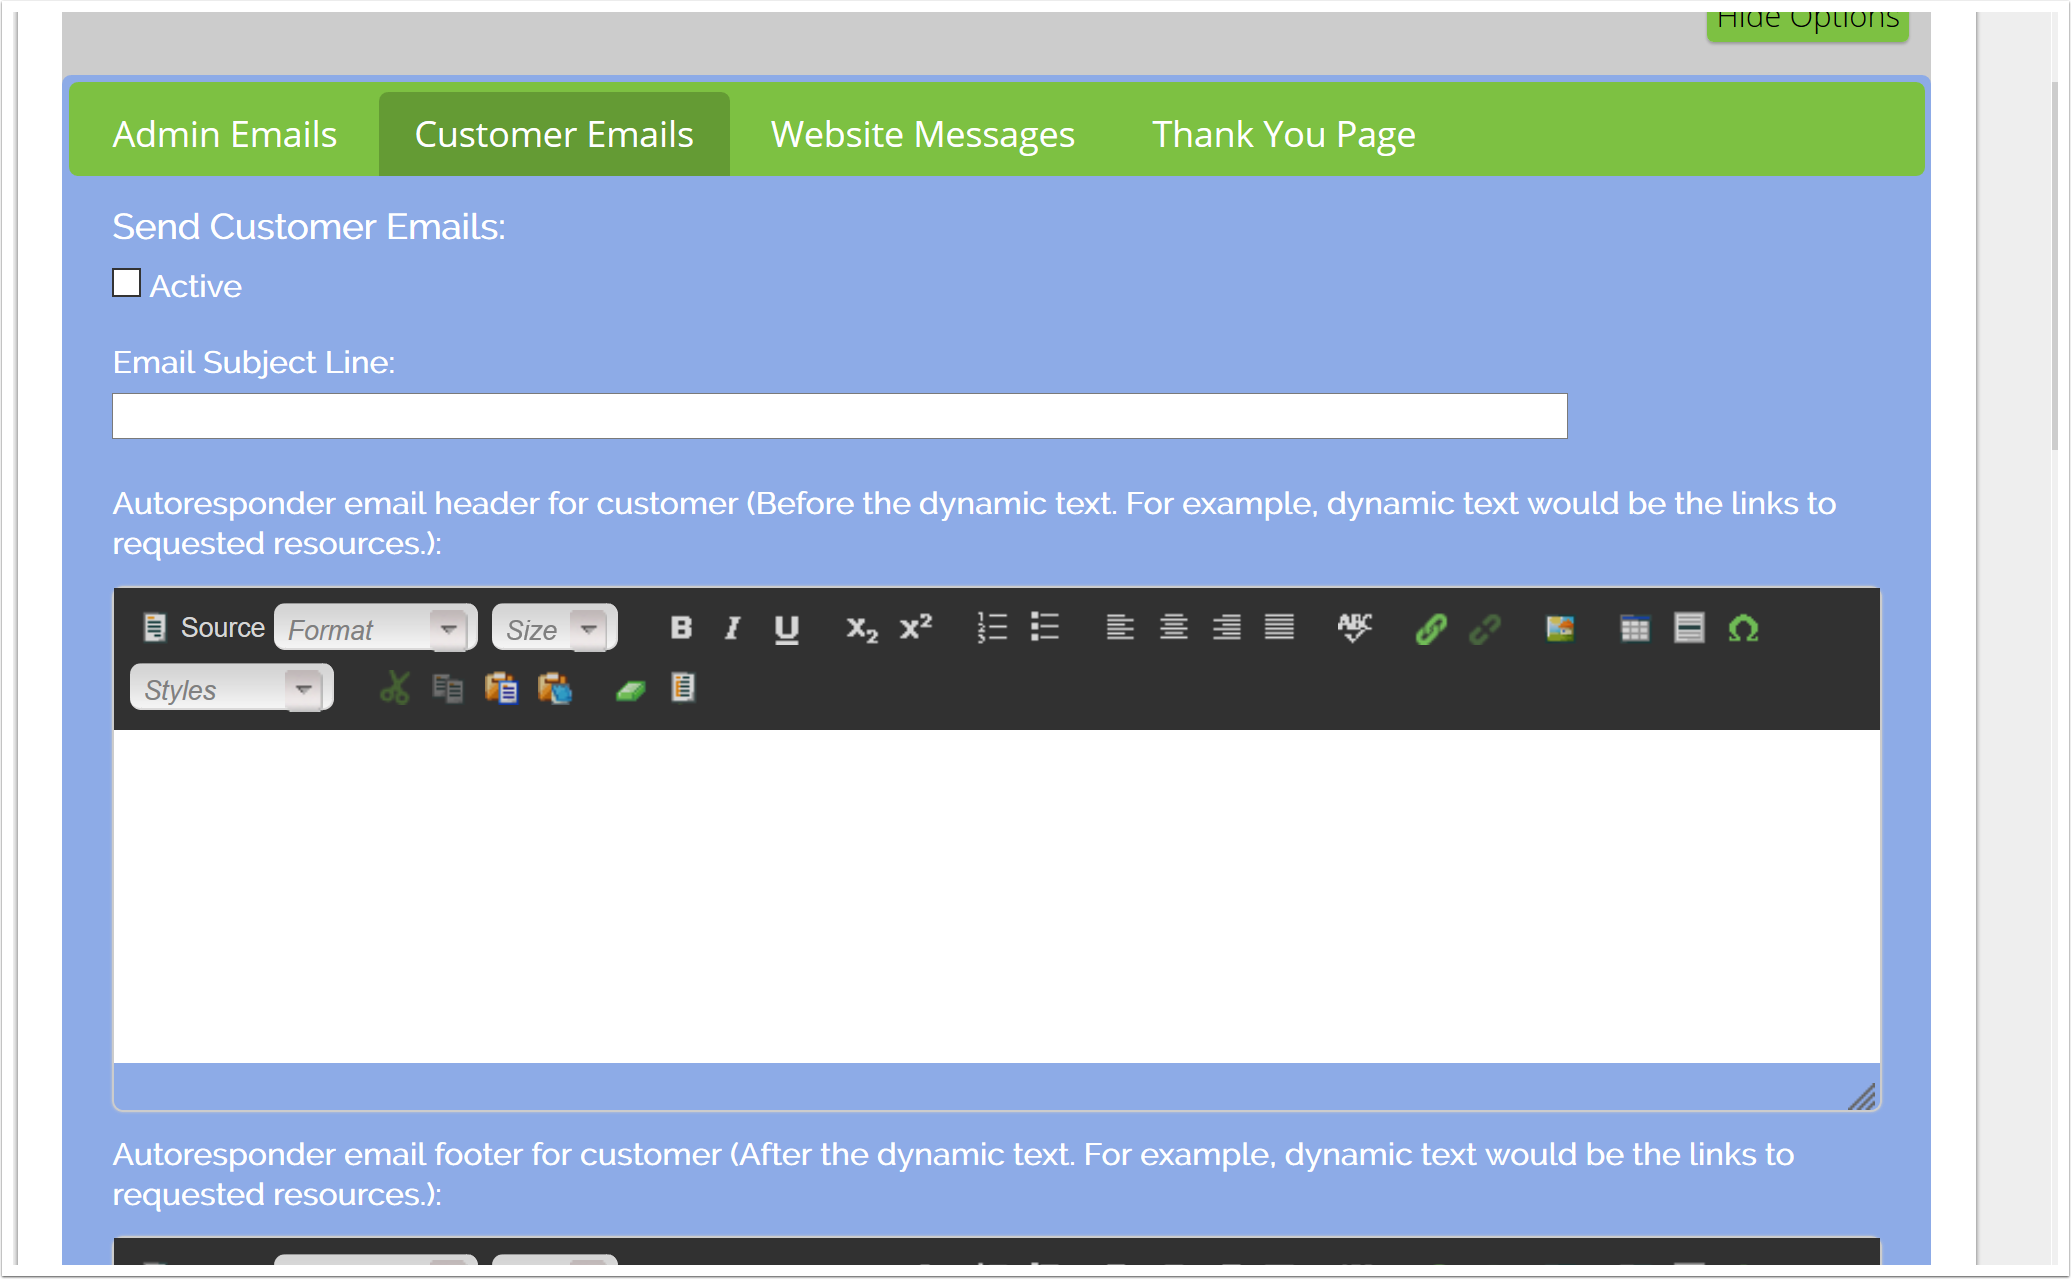 Send Customer Emails